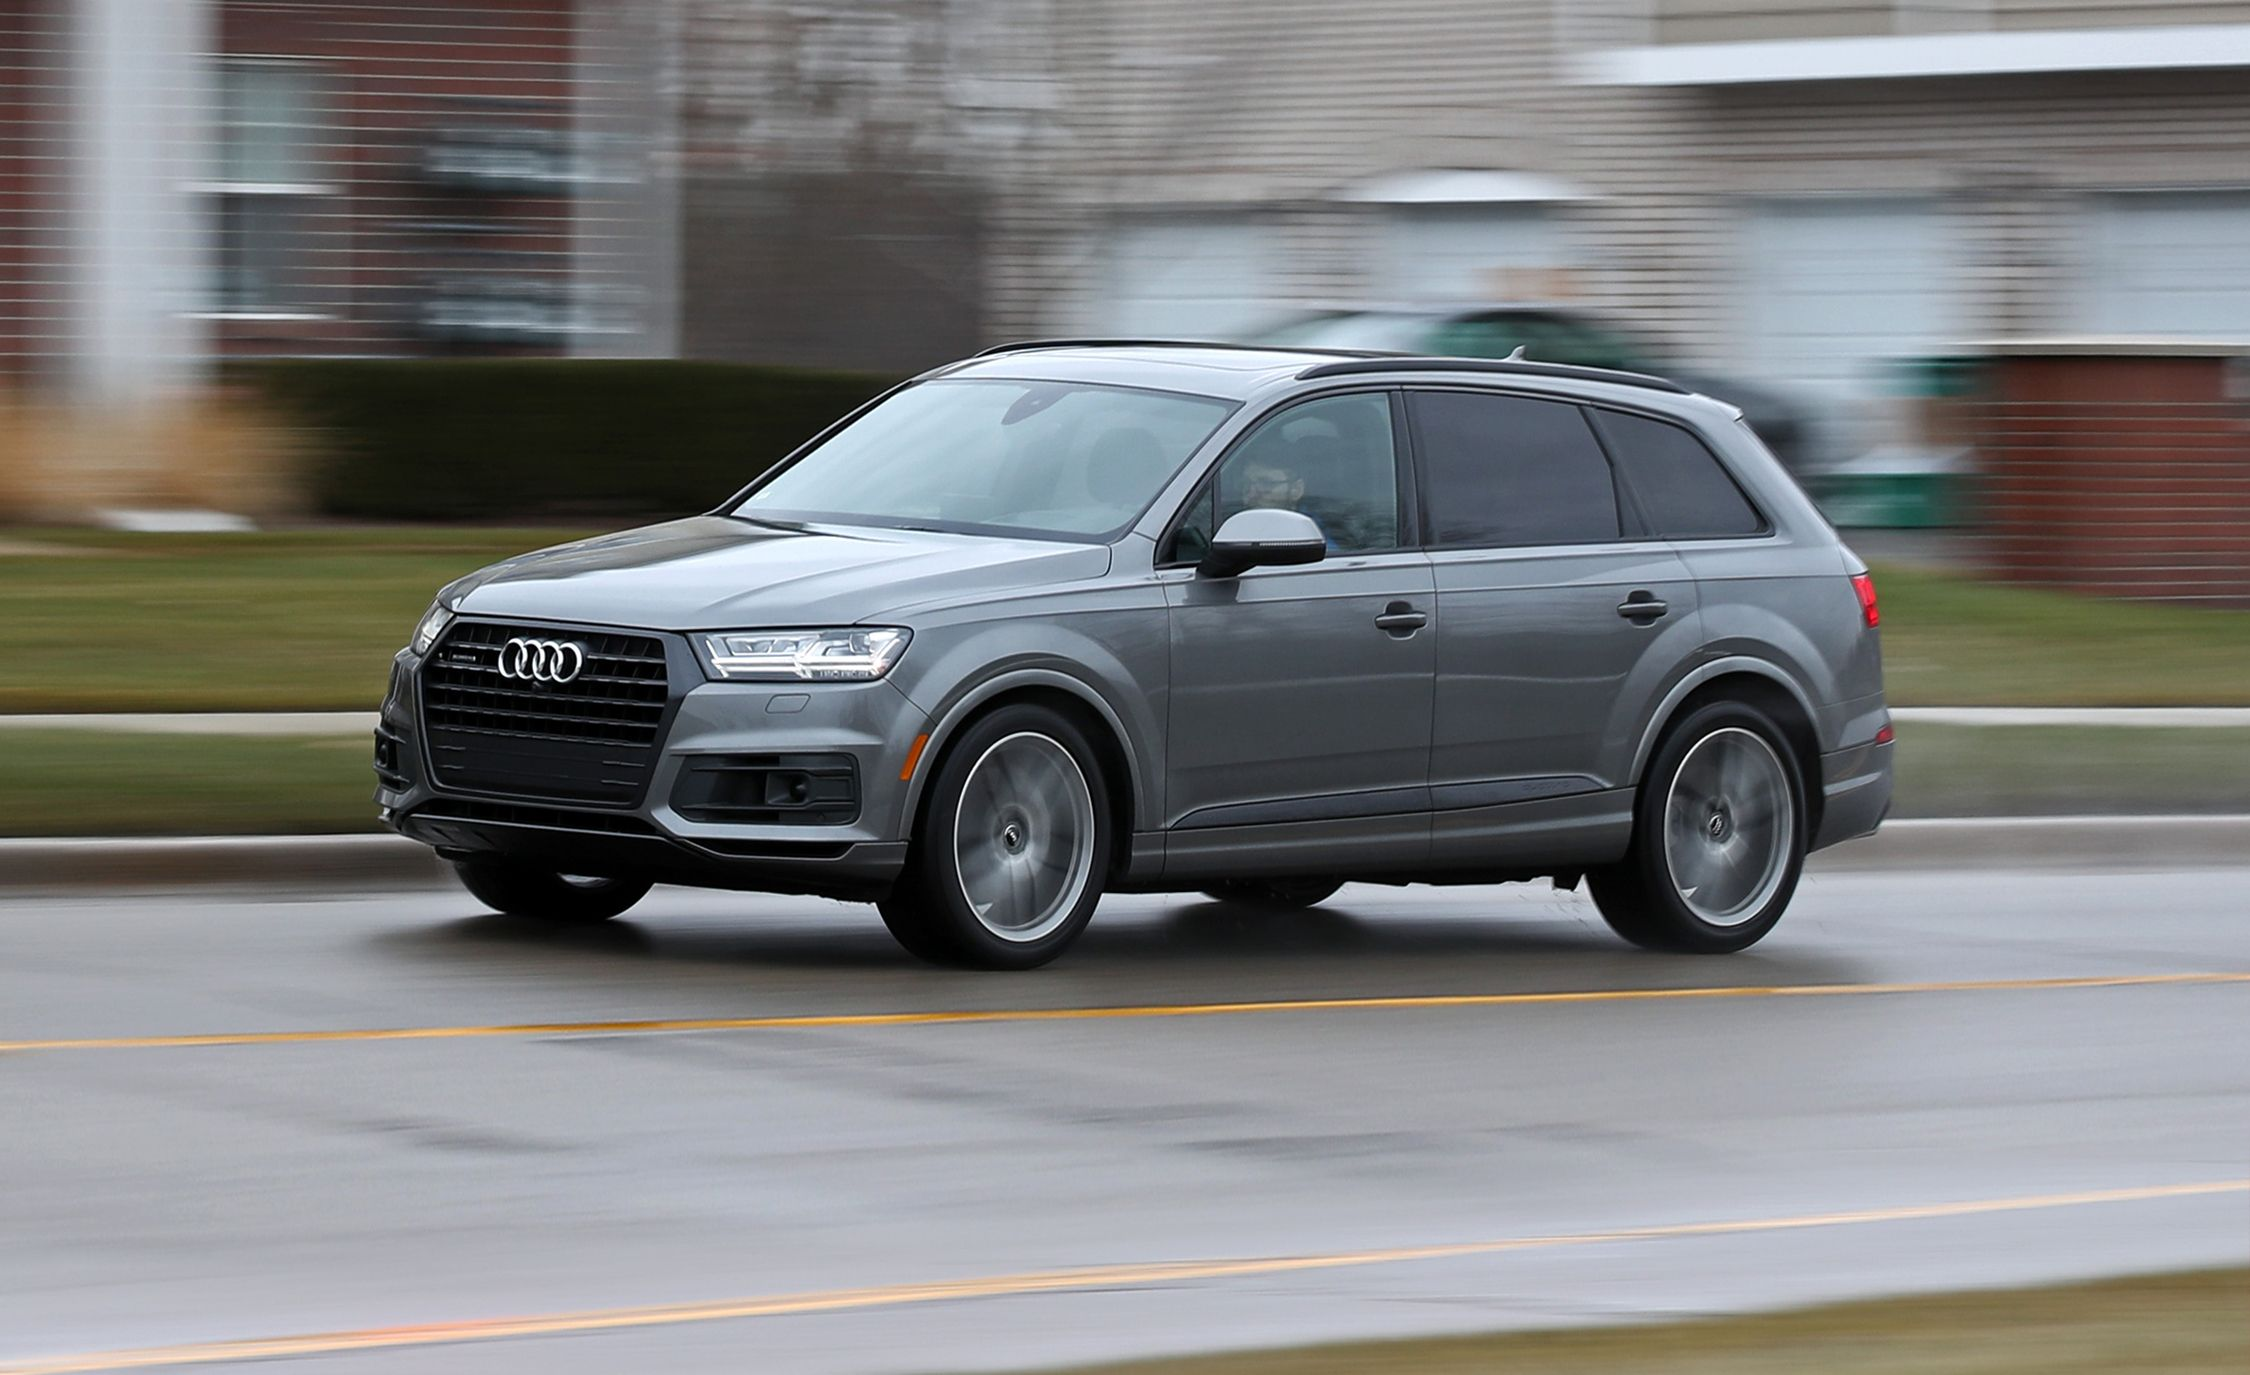 2018 audi q7 in depth model review car and driver rh caranddriver com Audi Q7 Exhaust System Audi Q7 Bumper